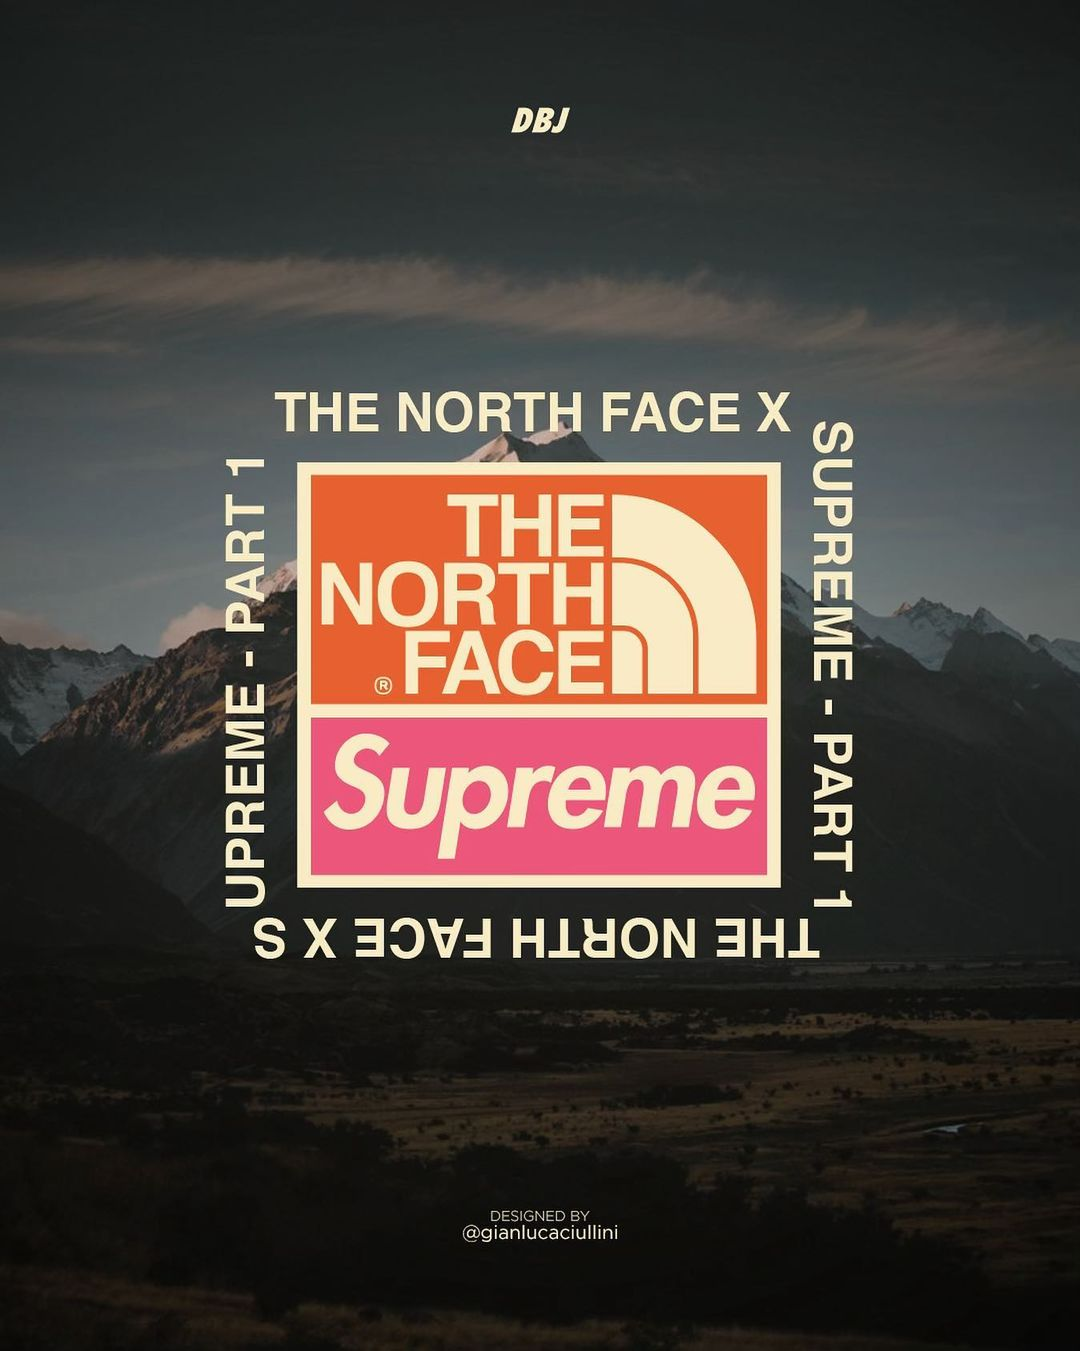 supreme-the-north-face-21aw-21fw-part-1-collaboration-release-20211023-week9